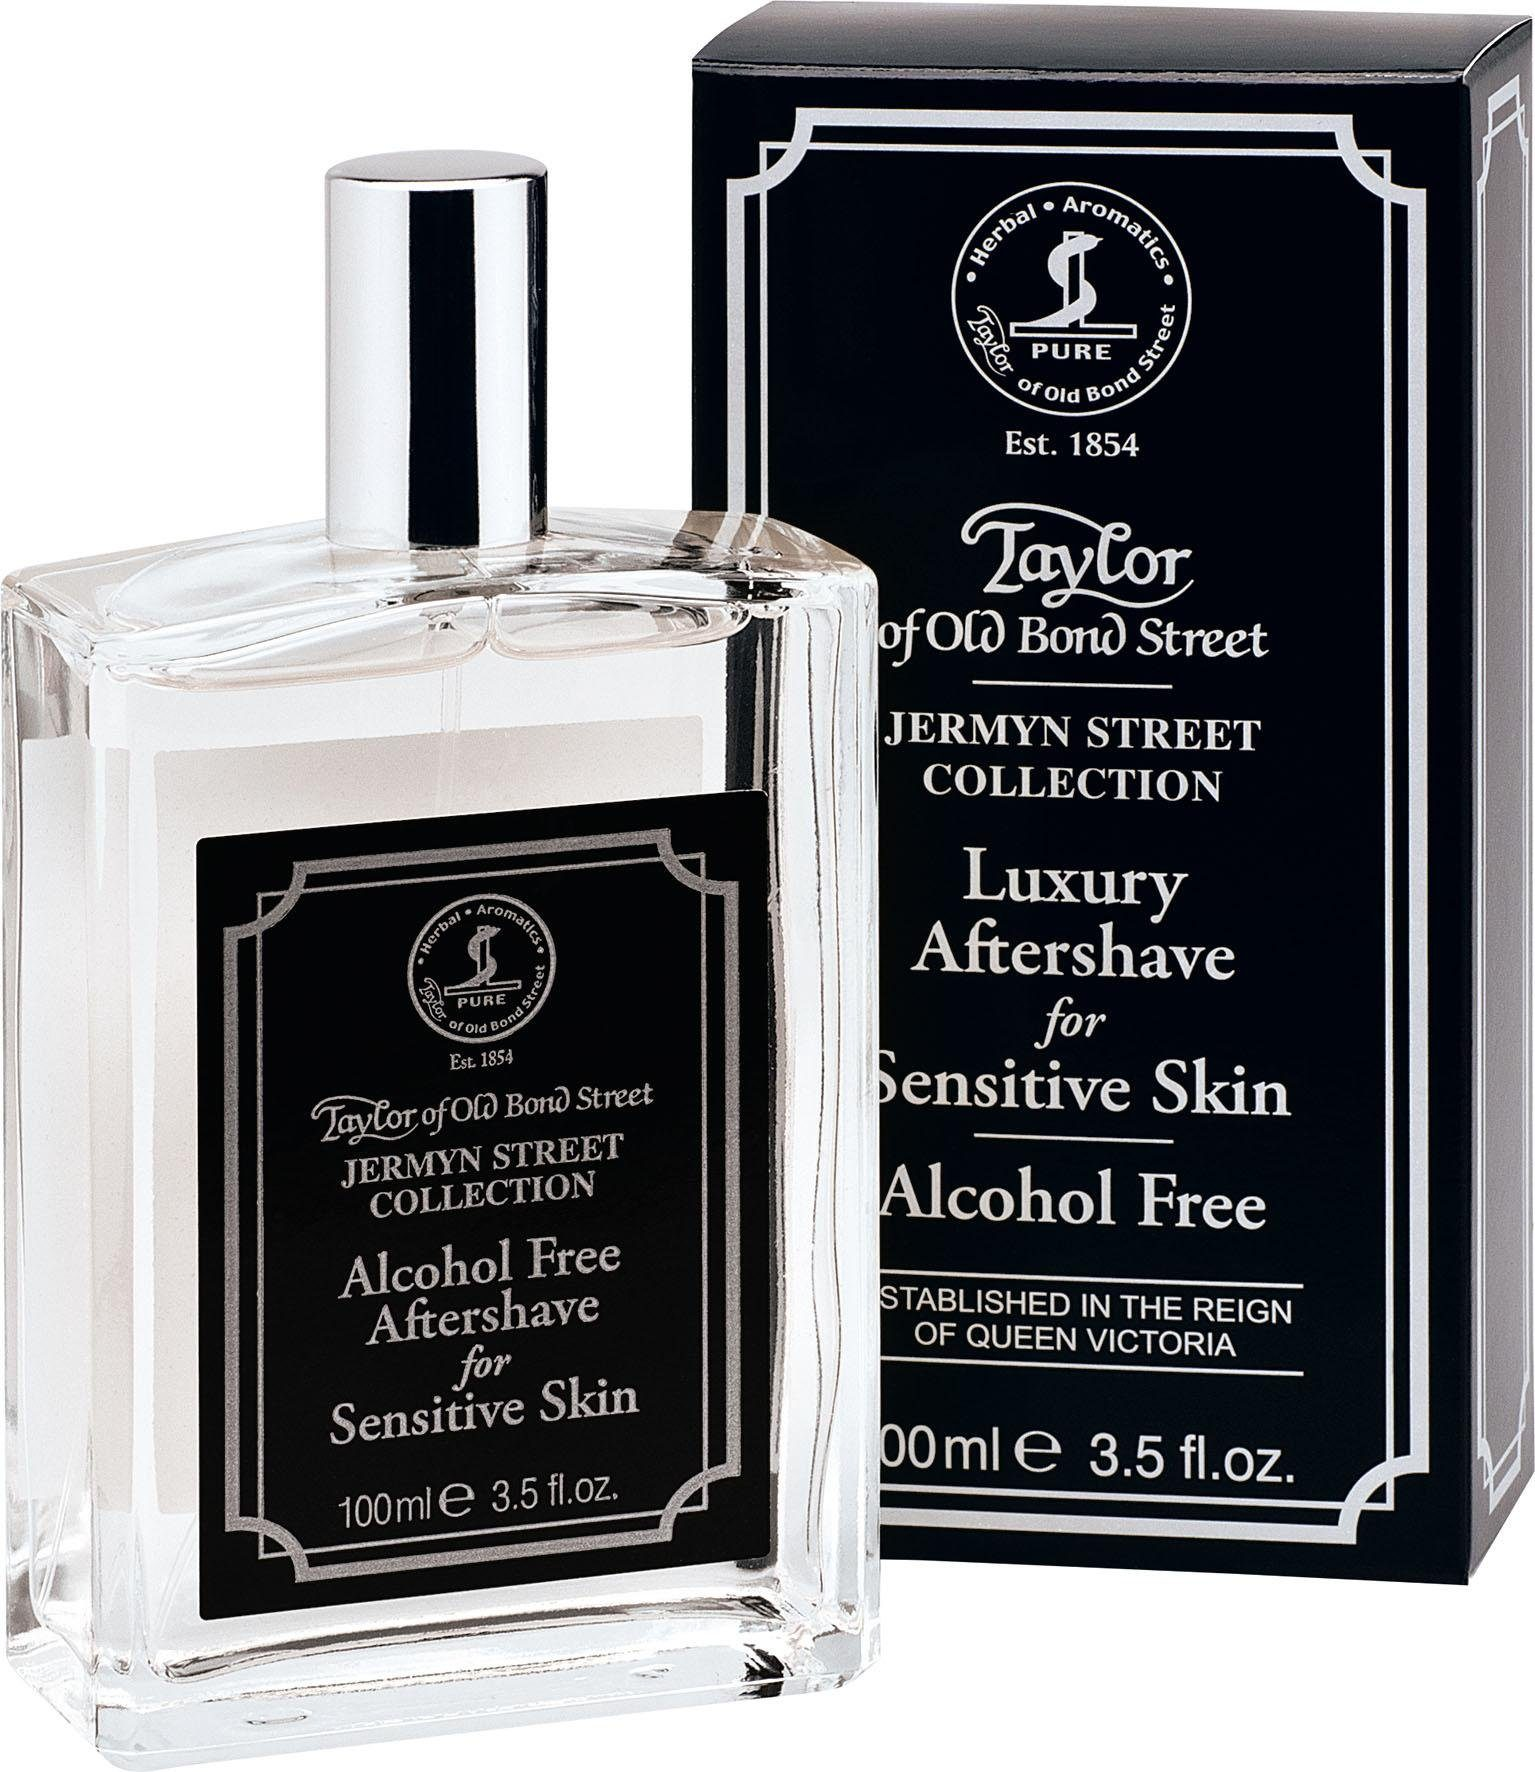 Taylor of Old Bond Street, »Jermyn Street Sensitive Skin Luxury Aftershave«, Aftershave